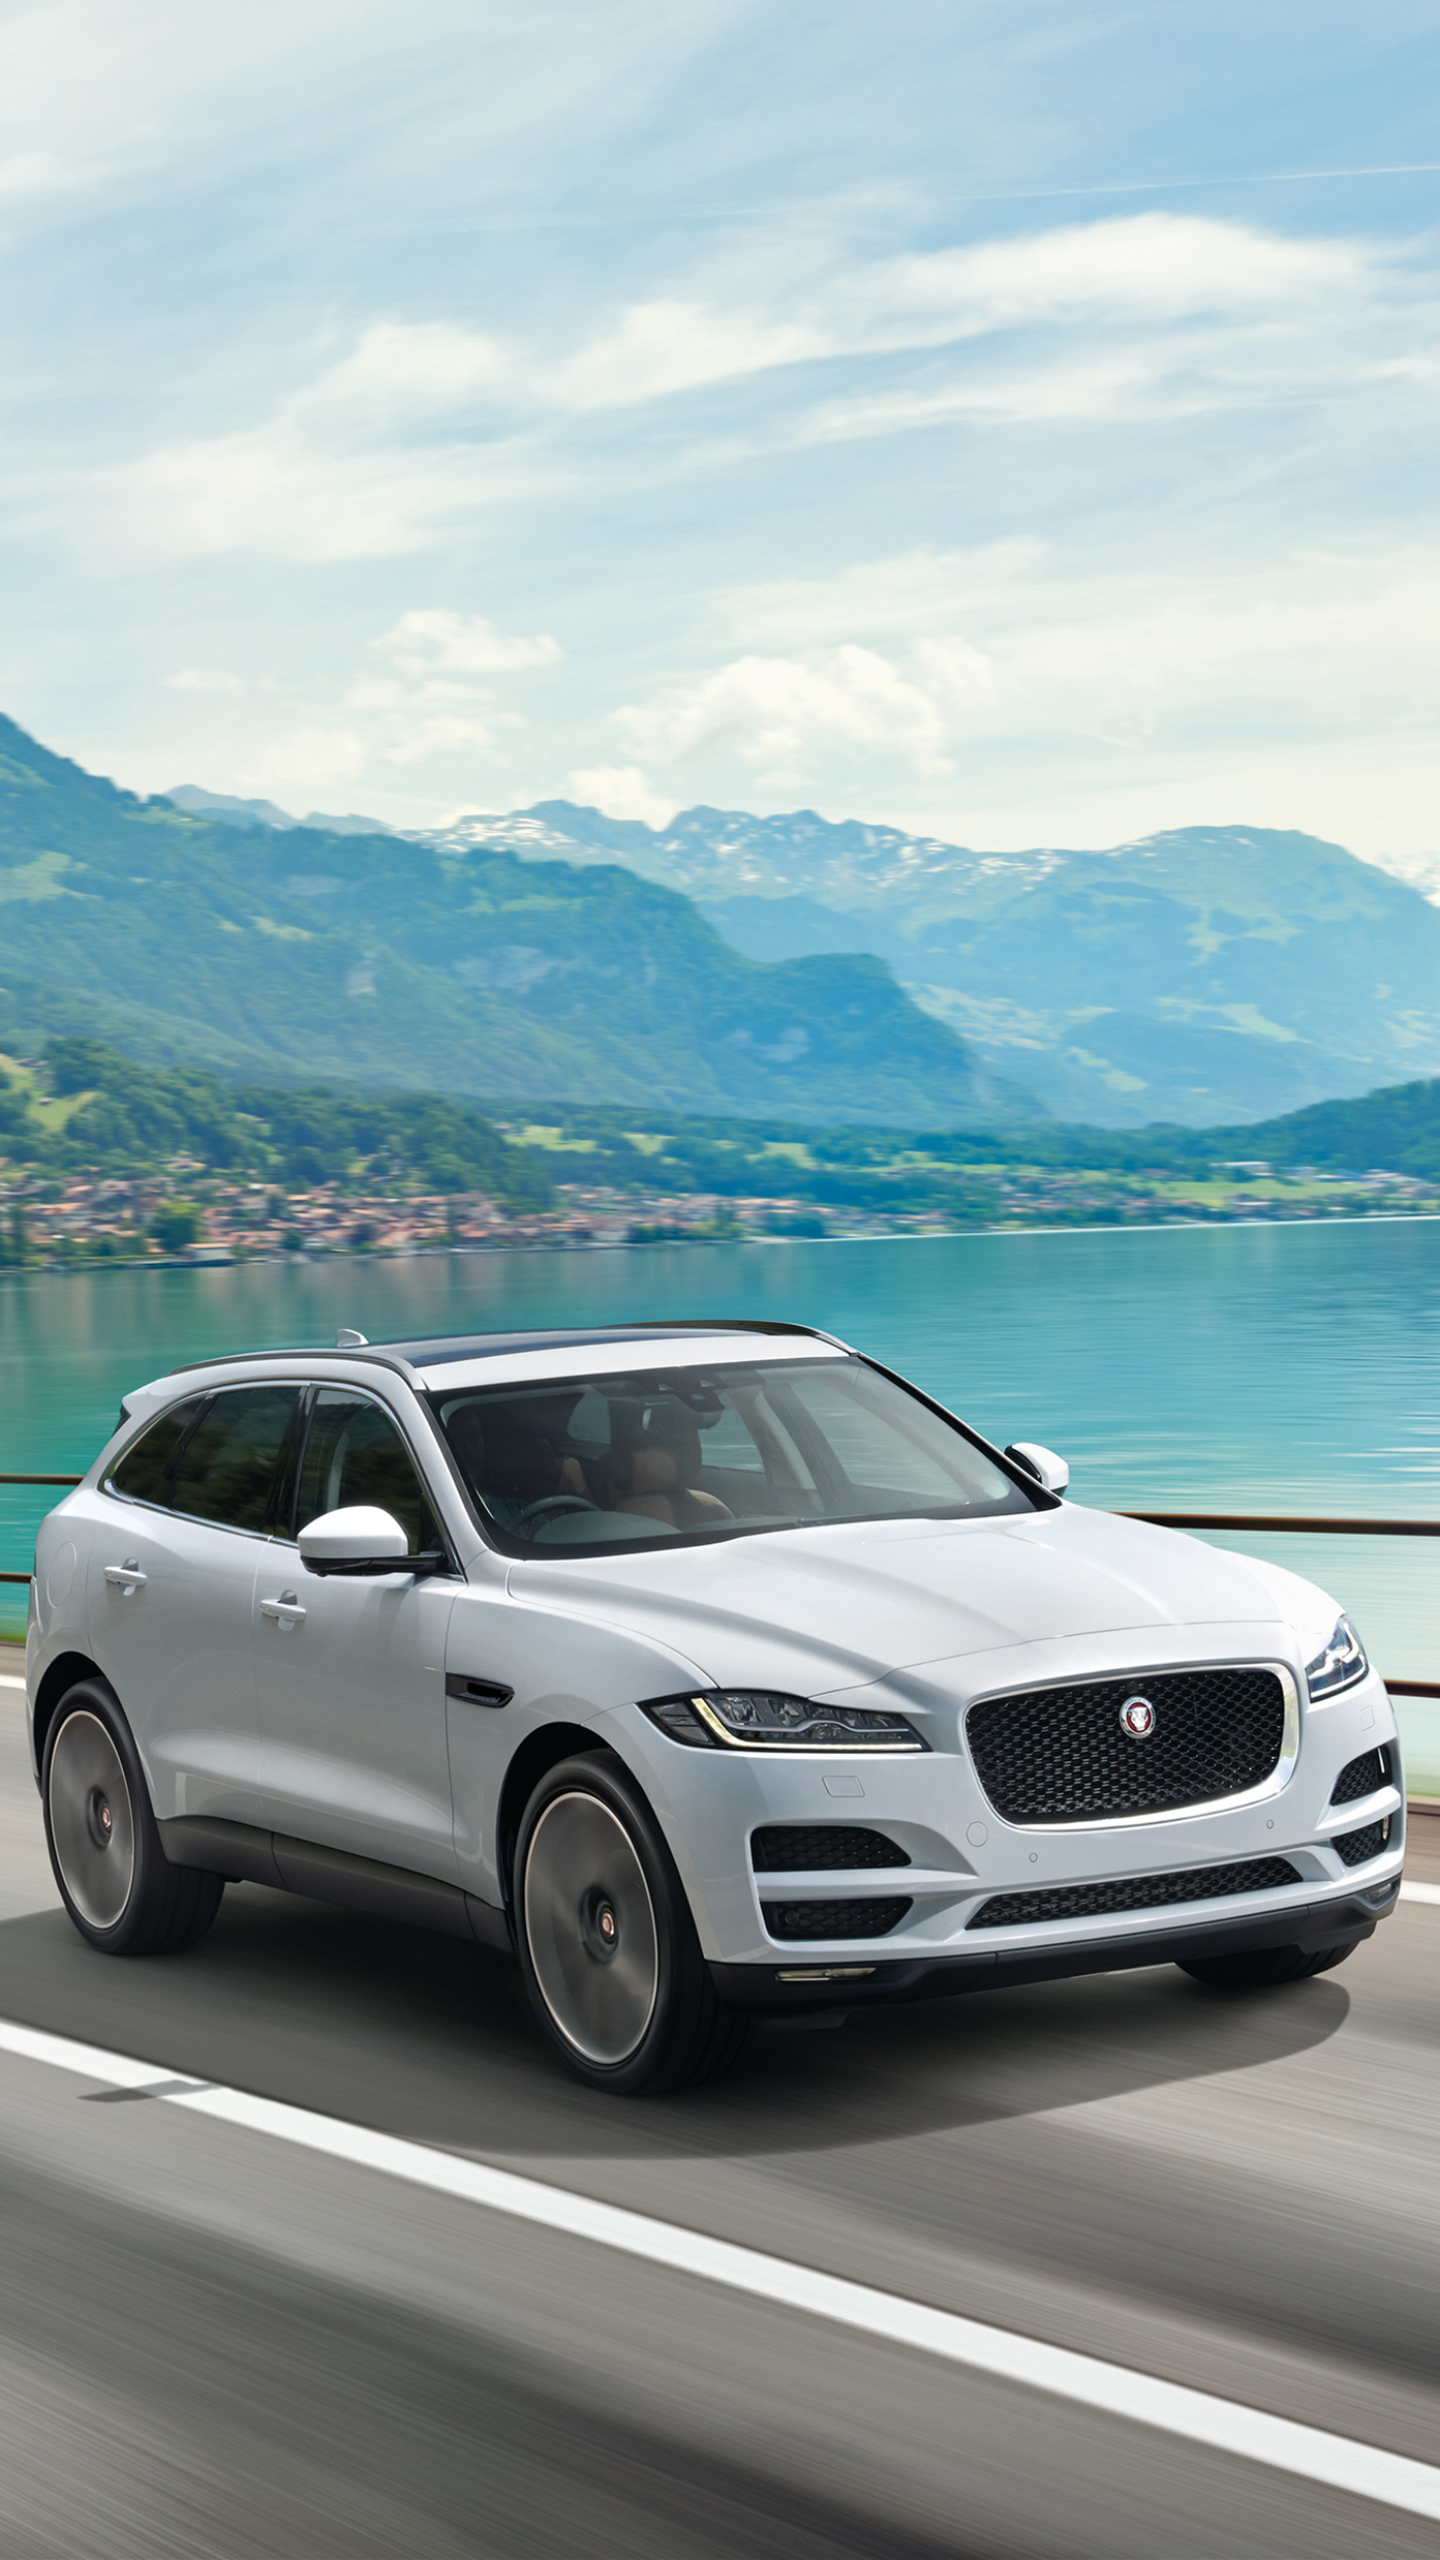 Vehicles Jaguar F Pace 1440x2560 Wallpaper Id 670772 Mobile Abyss